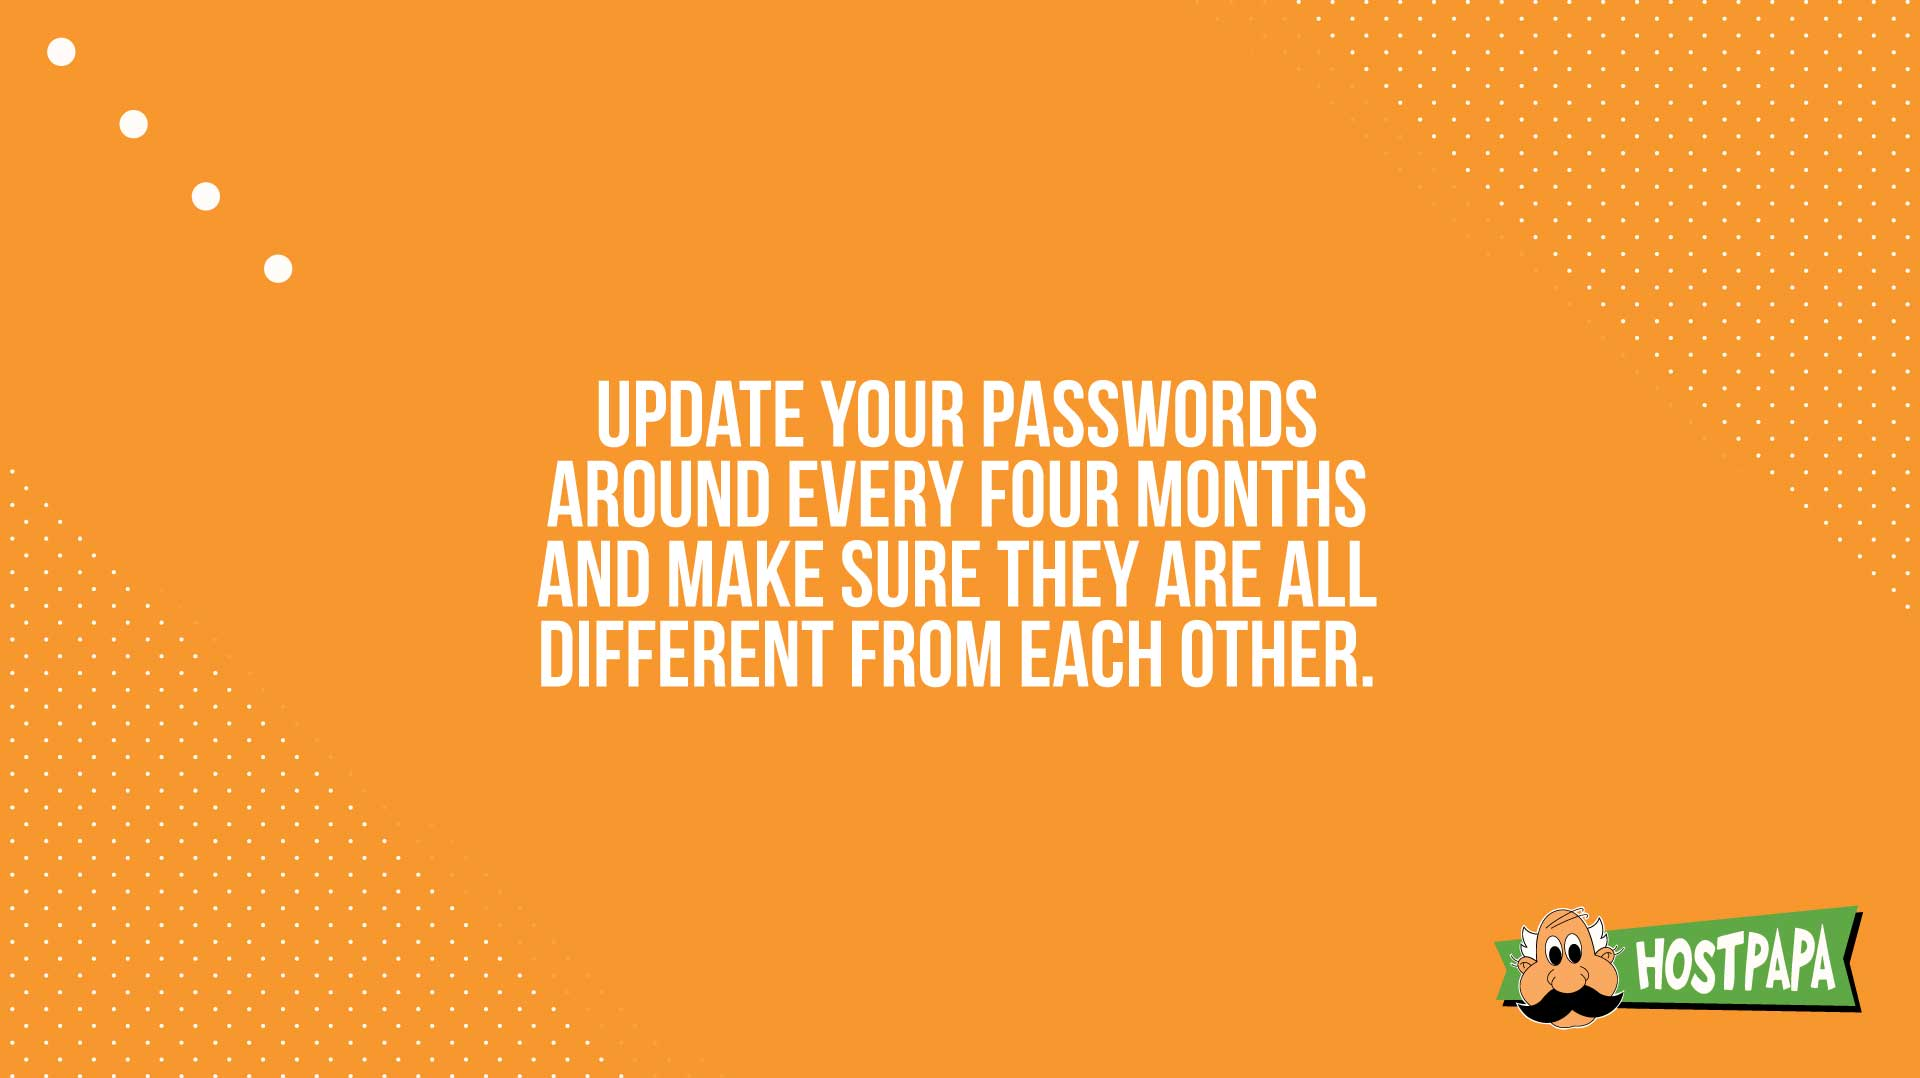 Update your passwords around every four months and make sure they are all different from each other